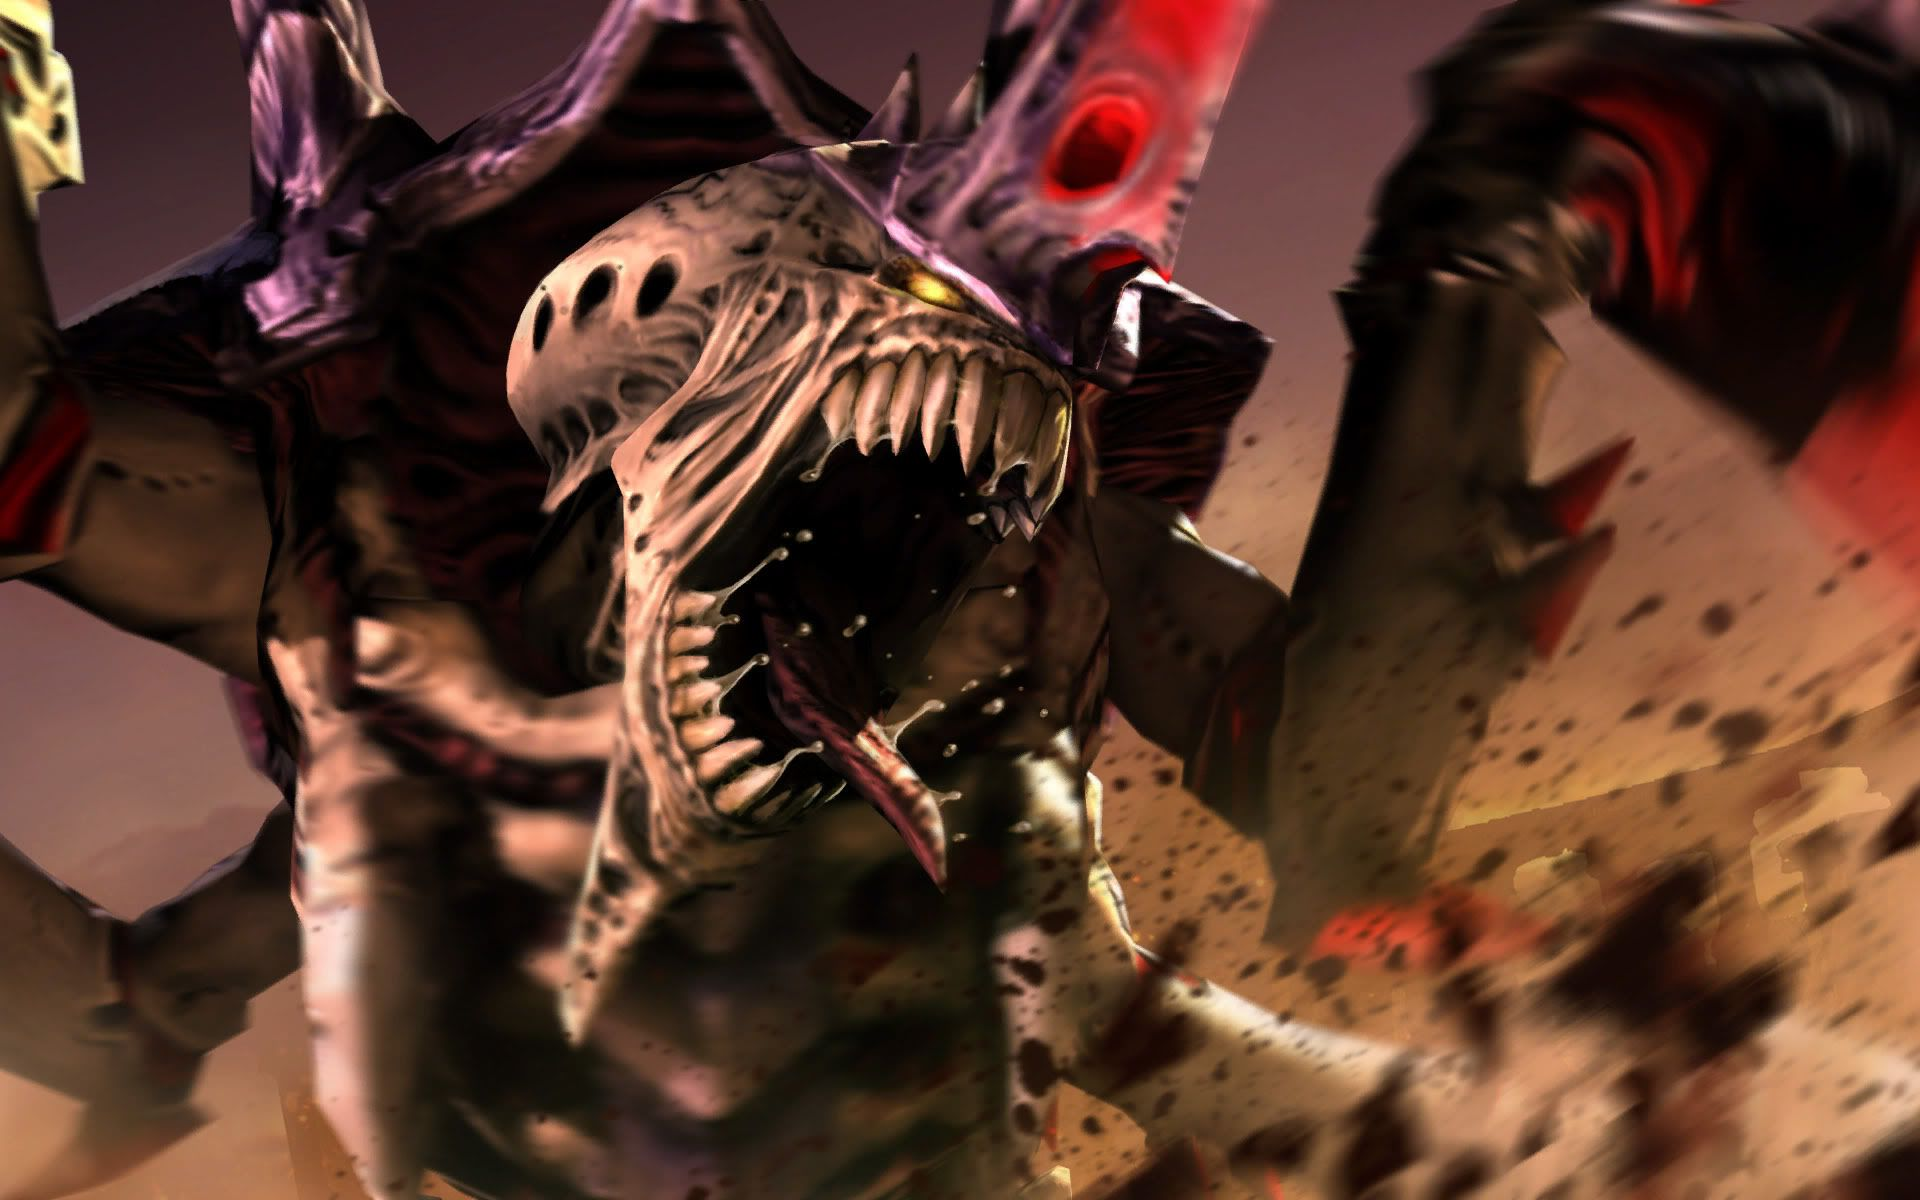 Pin By Veronica On Leaders Of The Swarm Tyranids Wallpaper Adorable